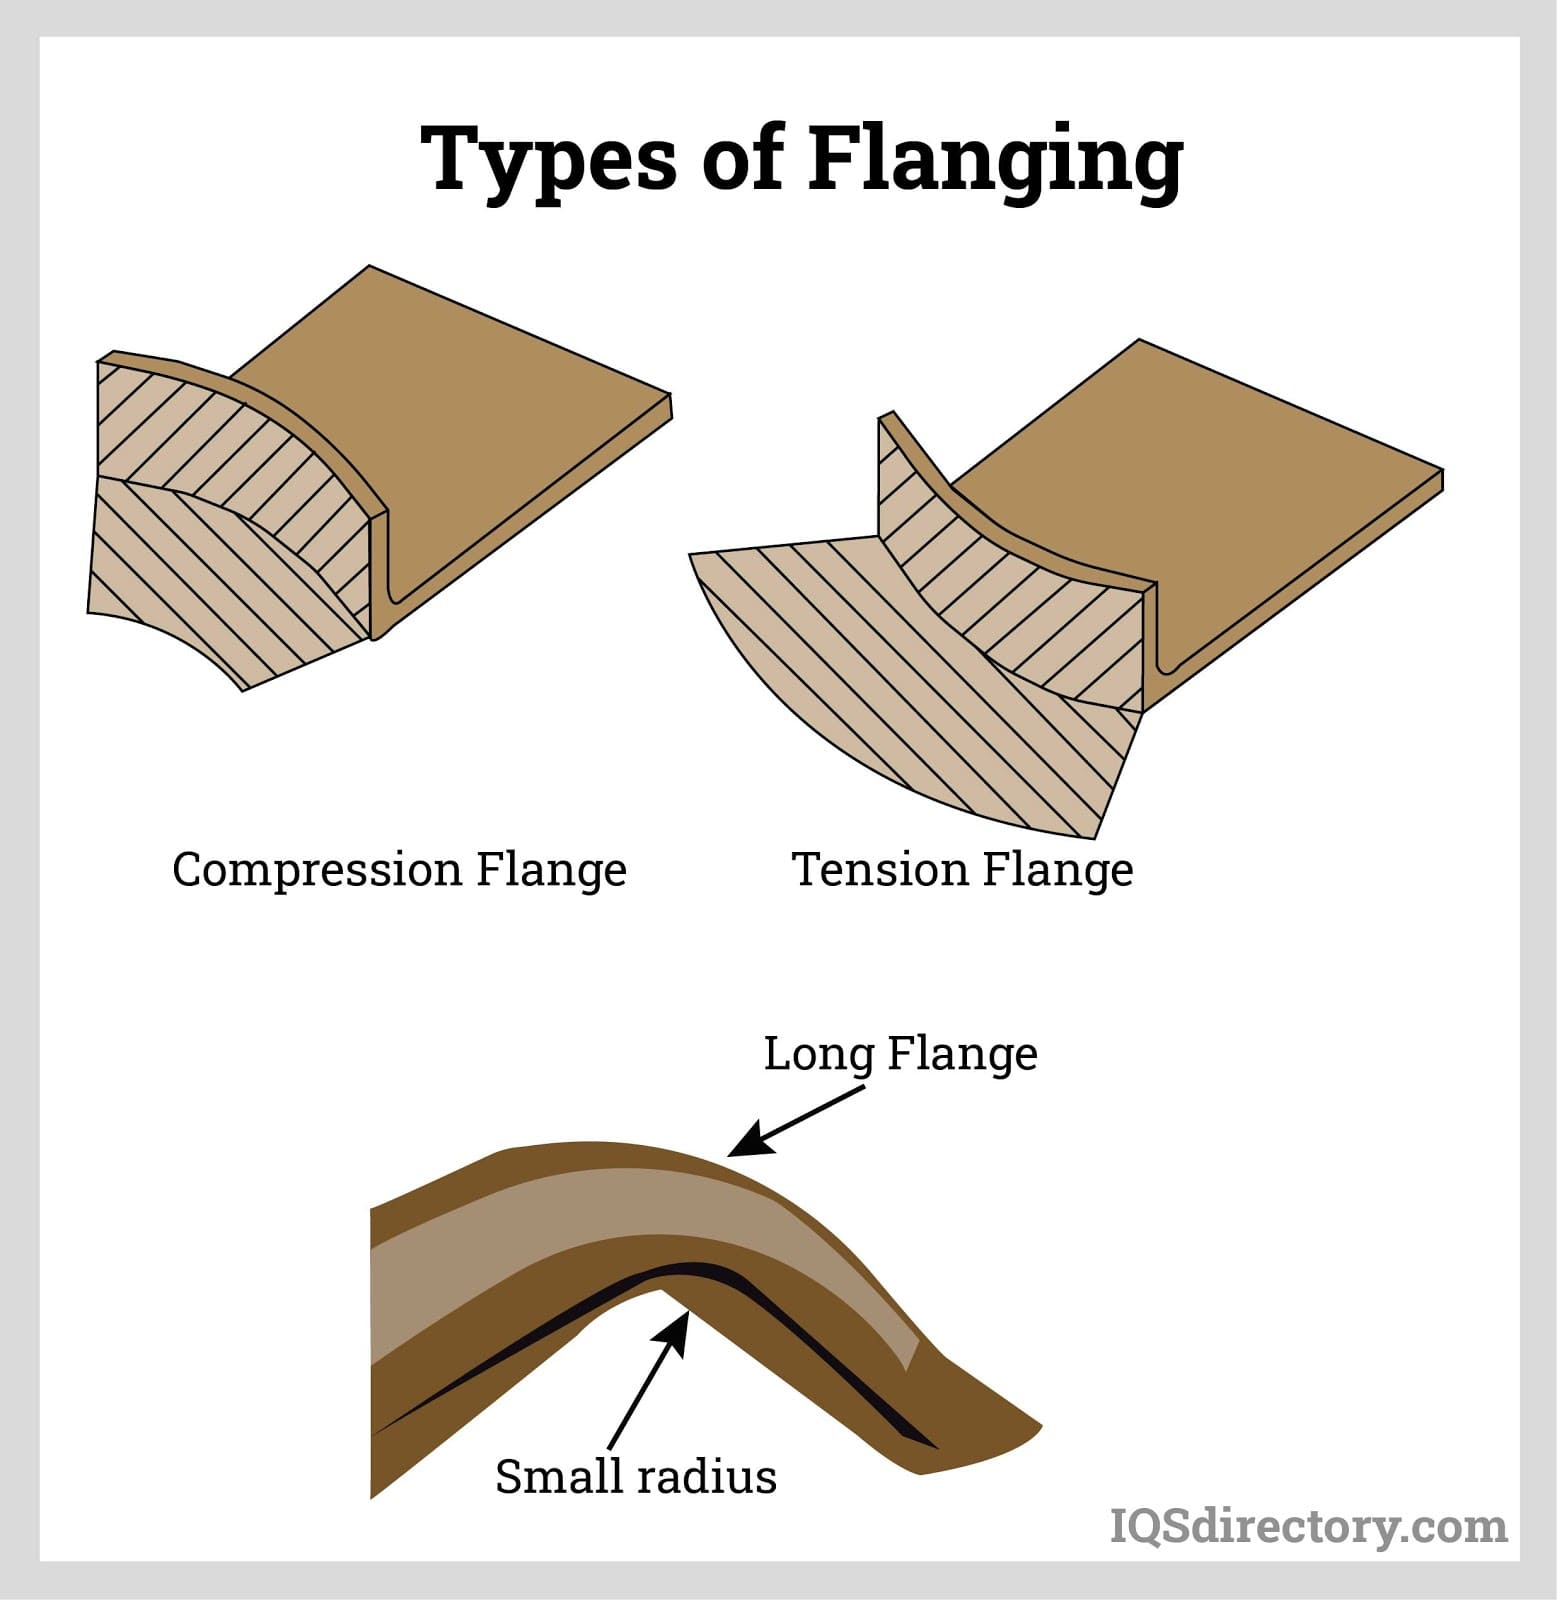 Types of Flanging